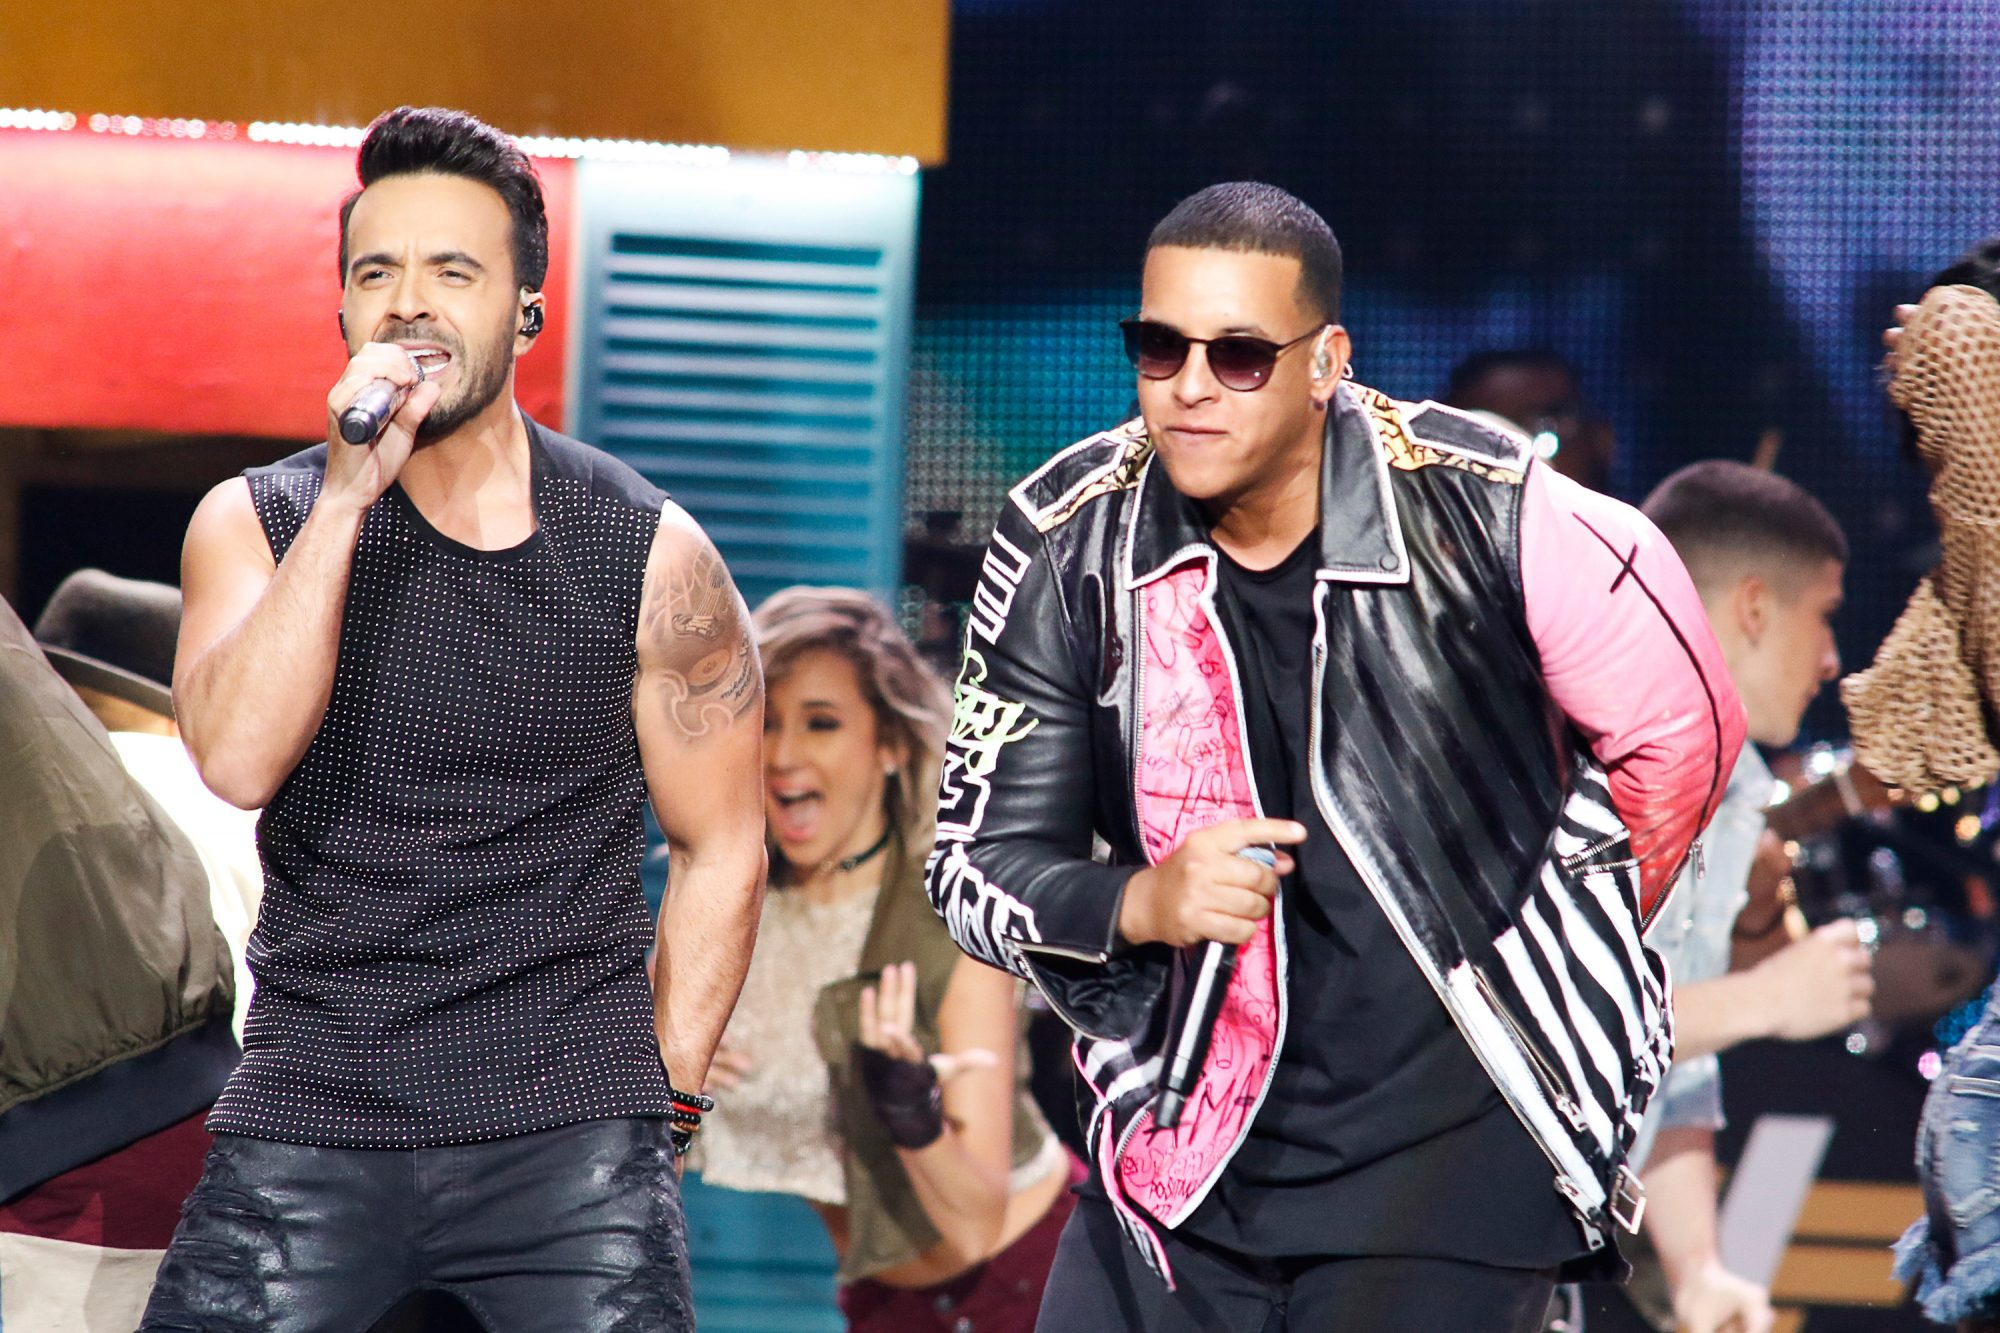 Luis Fonsi - DespacitoPREMIOS BILLBOARD DE LA MÚSICA LATINA 2017 -- Pictured: Luis Fonsi, Daddy Yankee perform on stage at the Watsco Center in the University of Miami, Coral Gables, Florida on April 27, 2017